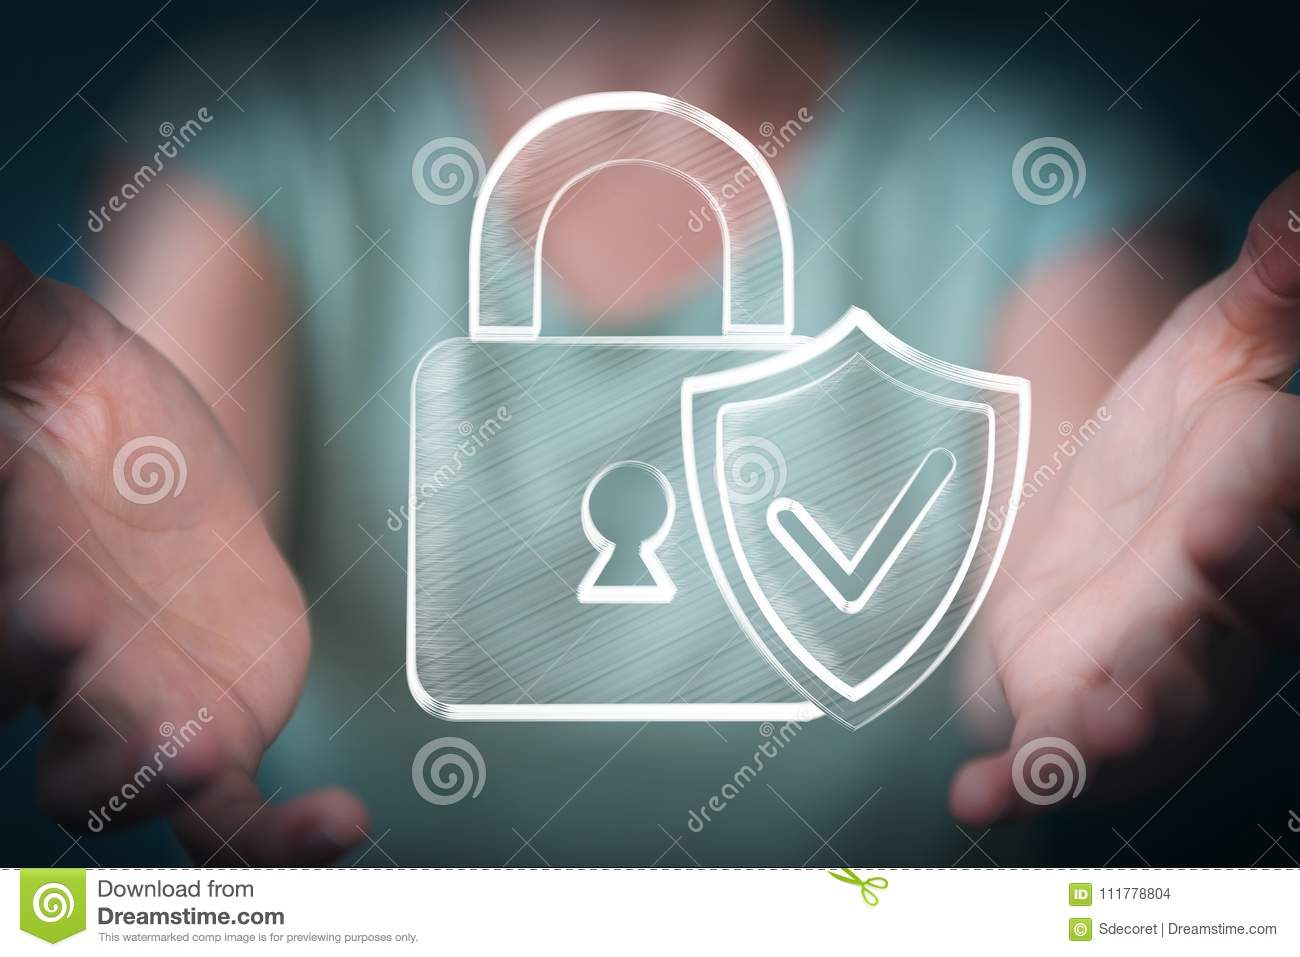 Businesswoman holding and touching a hand-drawn antivirus system